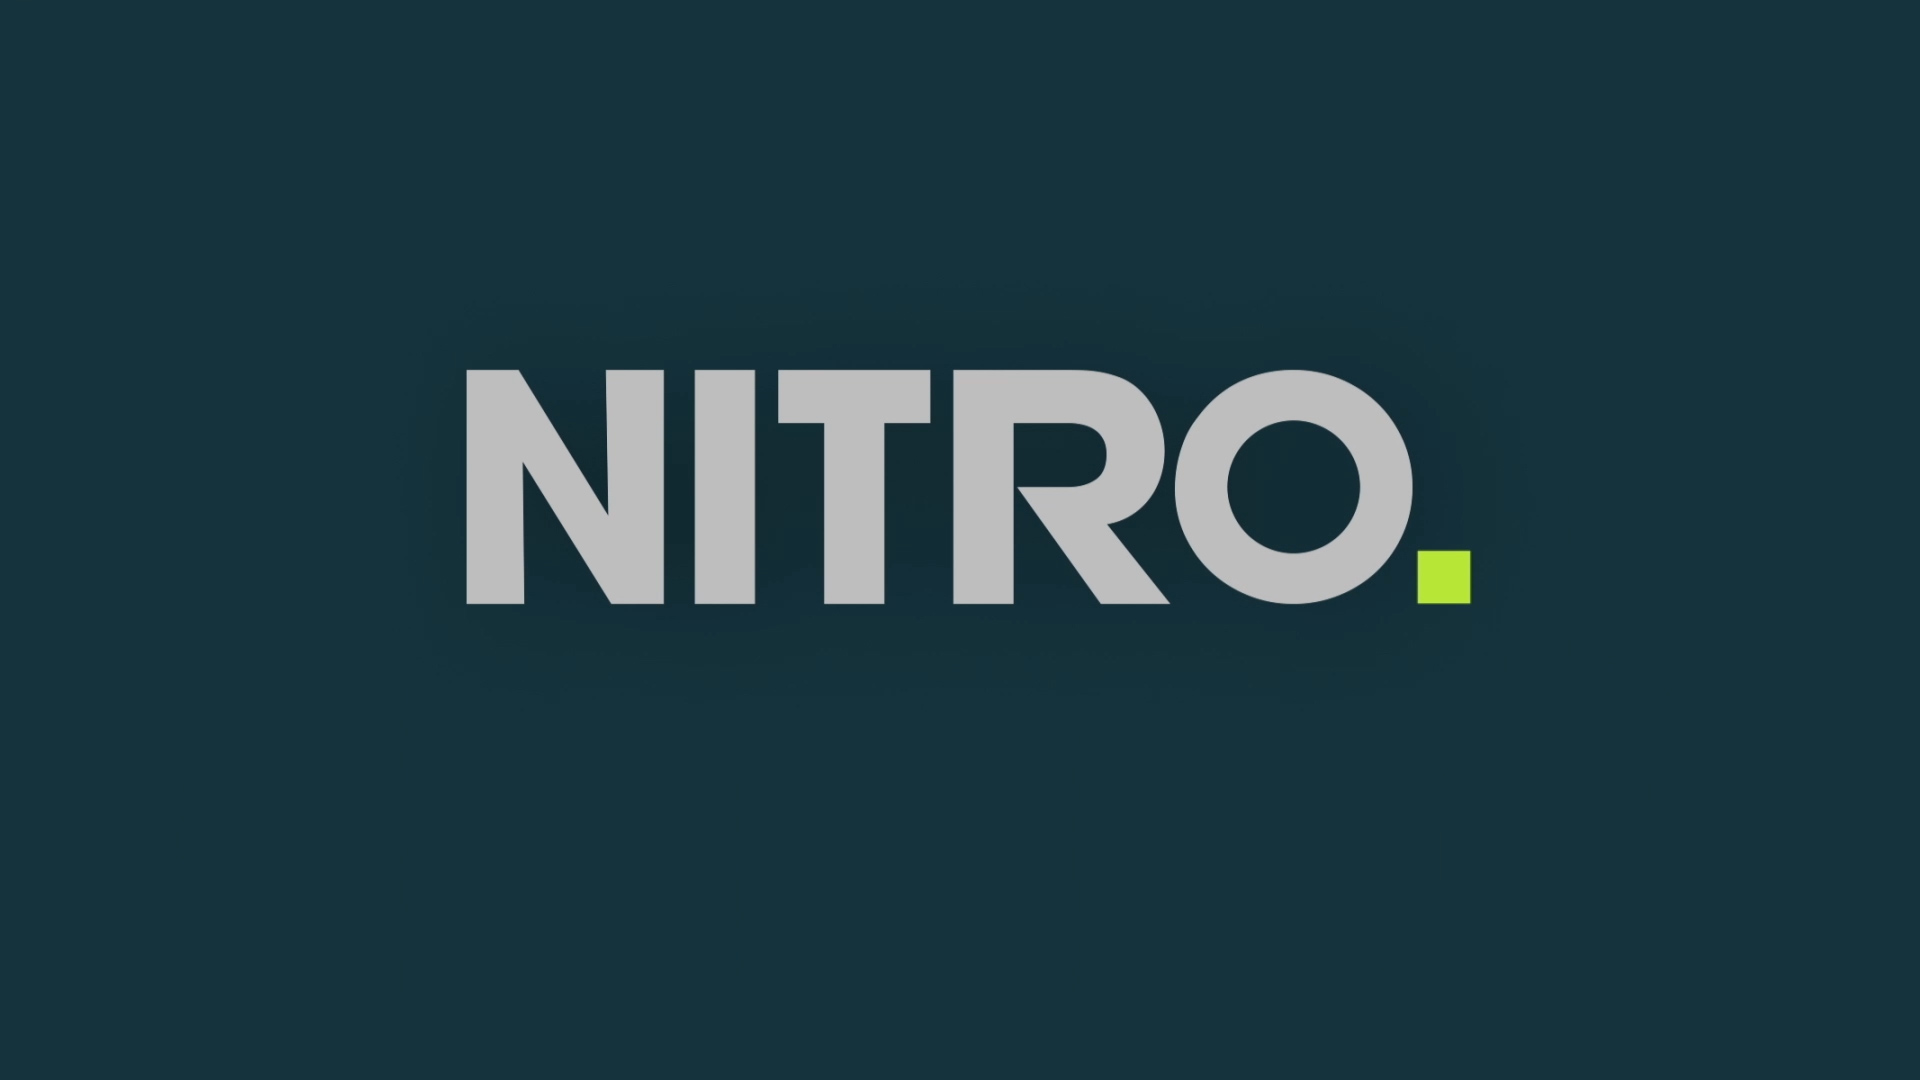 NITRO Innovationday